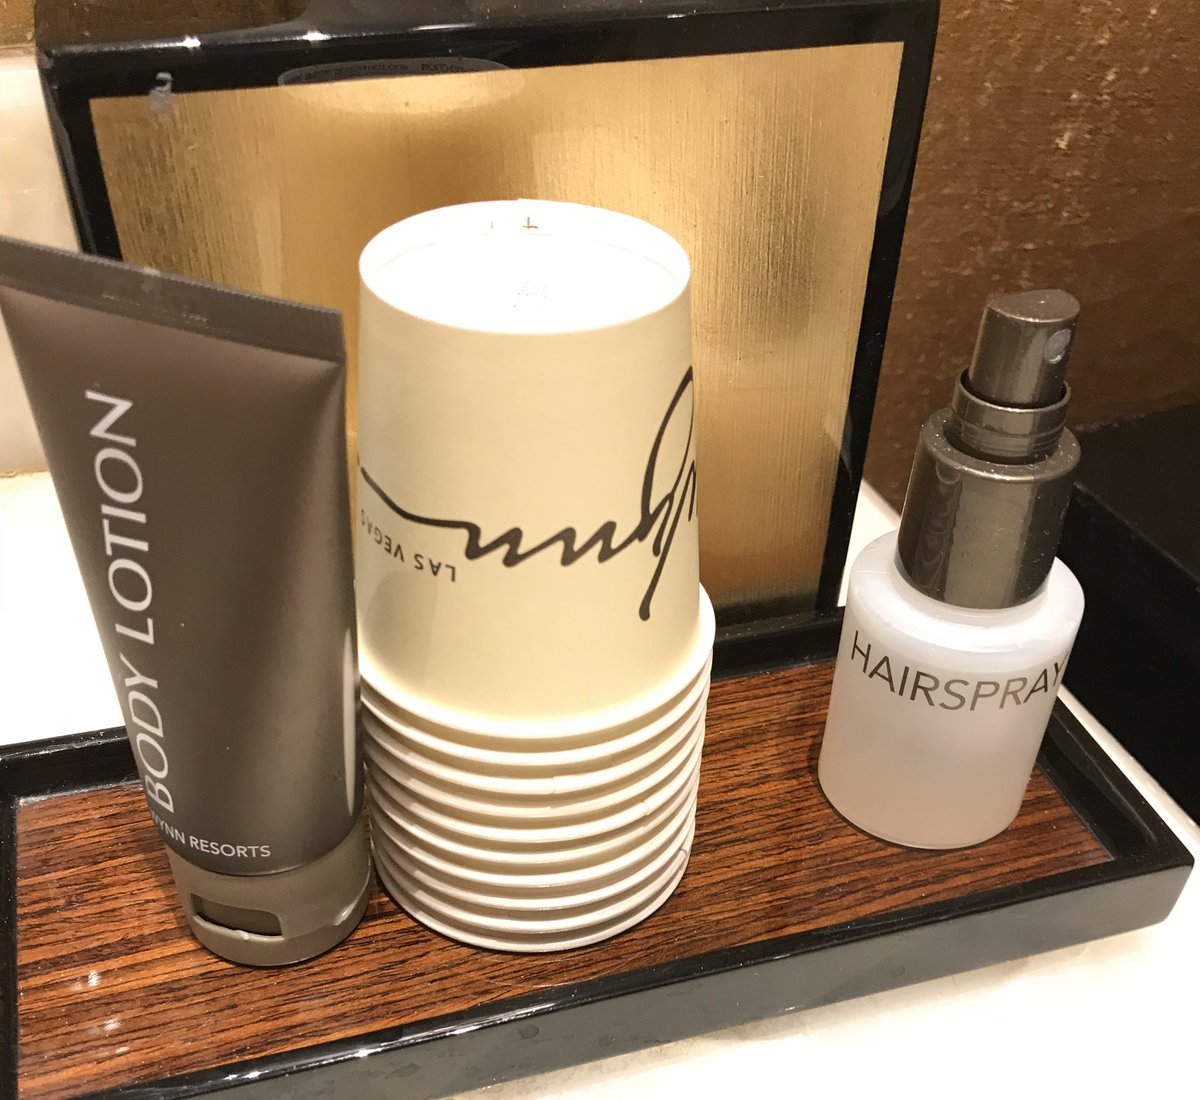 jdorf: In honor of @philwinkle the Wynn has hairspray in the bathrooms… #MagentoImagine https://t.co/0fc7WIJVm9